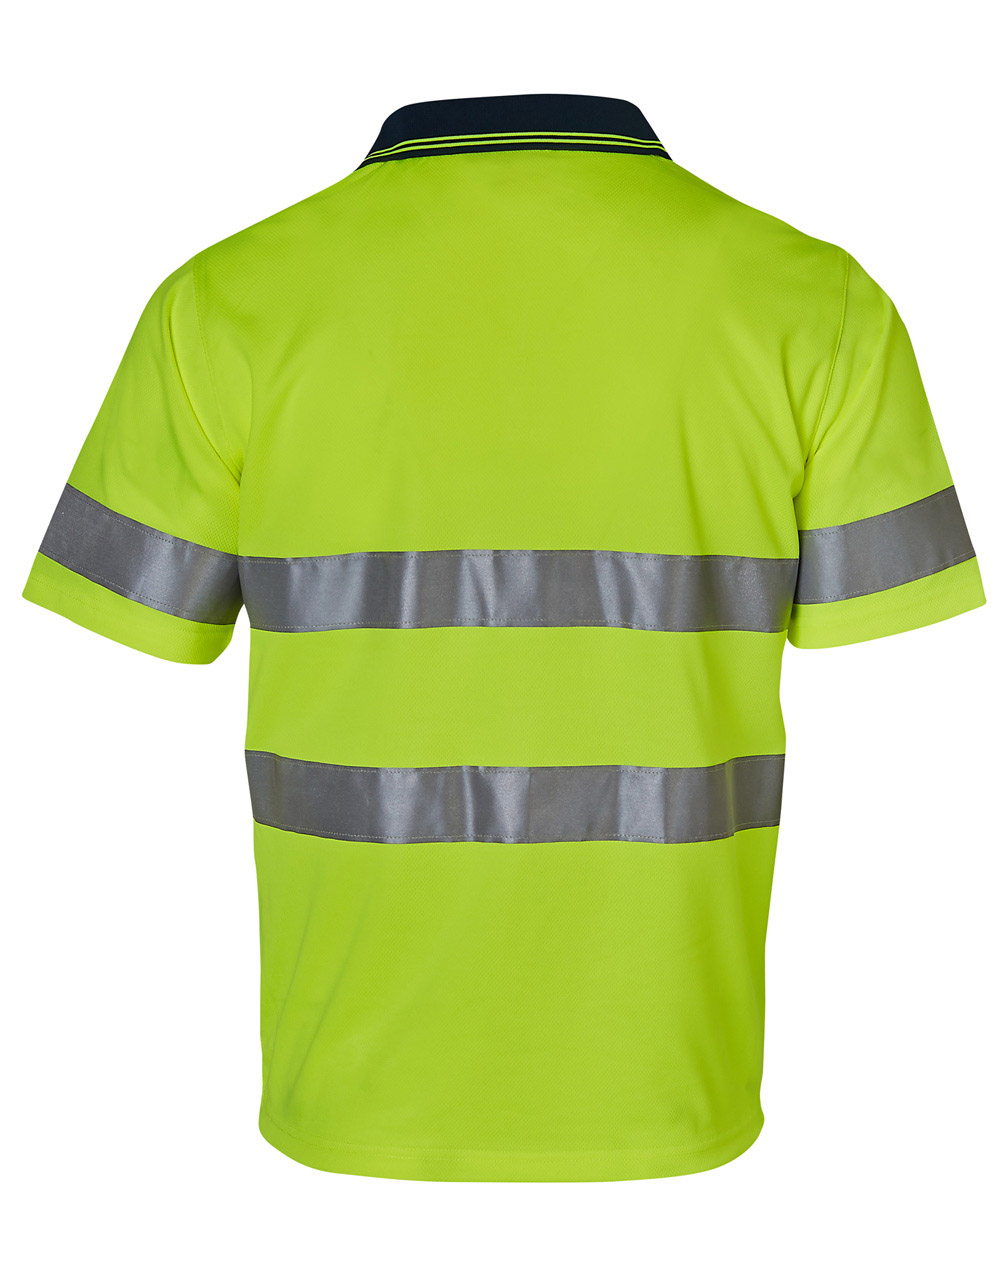 https://s3-ap-southeast-1.amazonaws.com/ws-imgs/WORKWEAR/SW17A_YellowNavy_Back.jpg